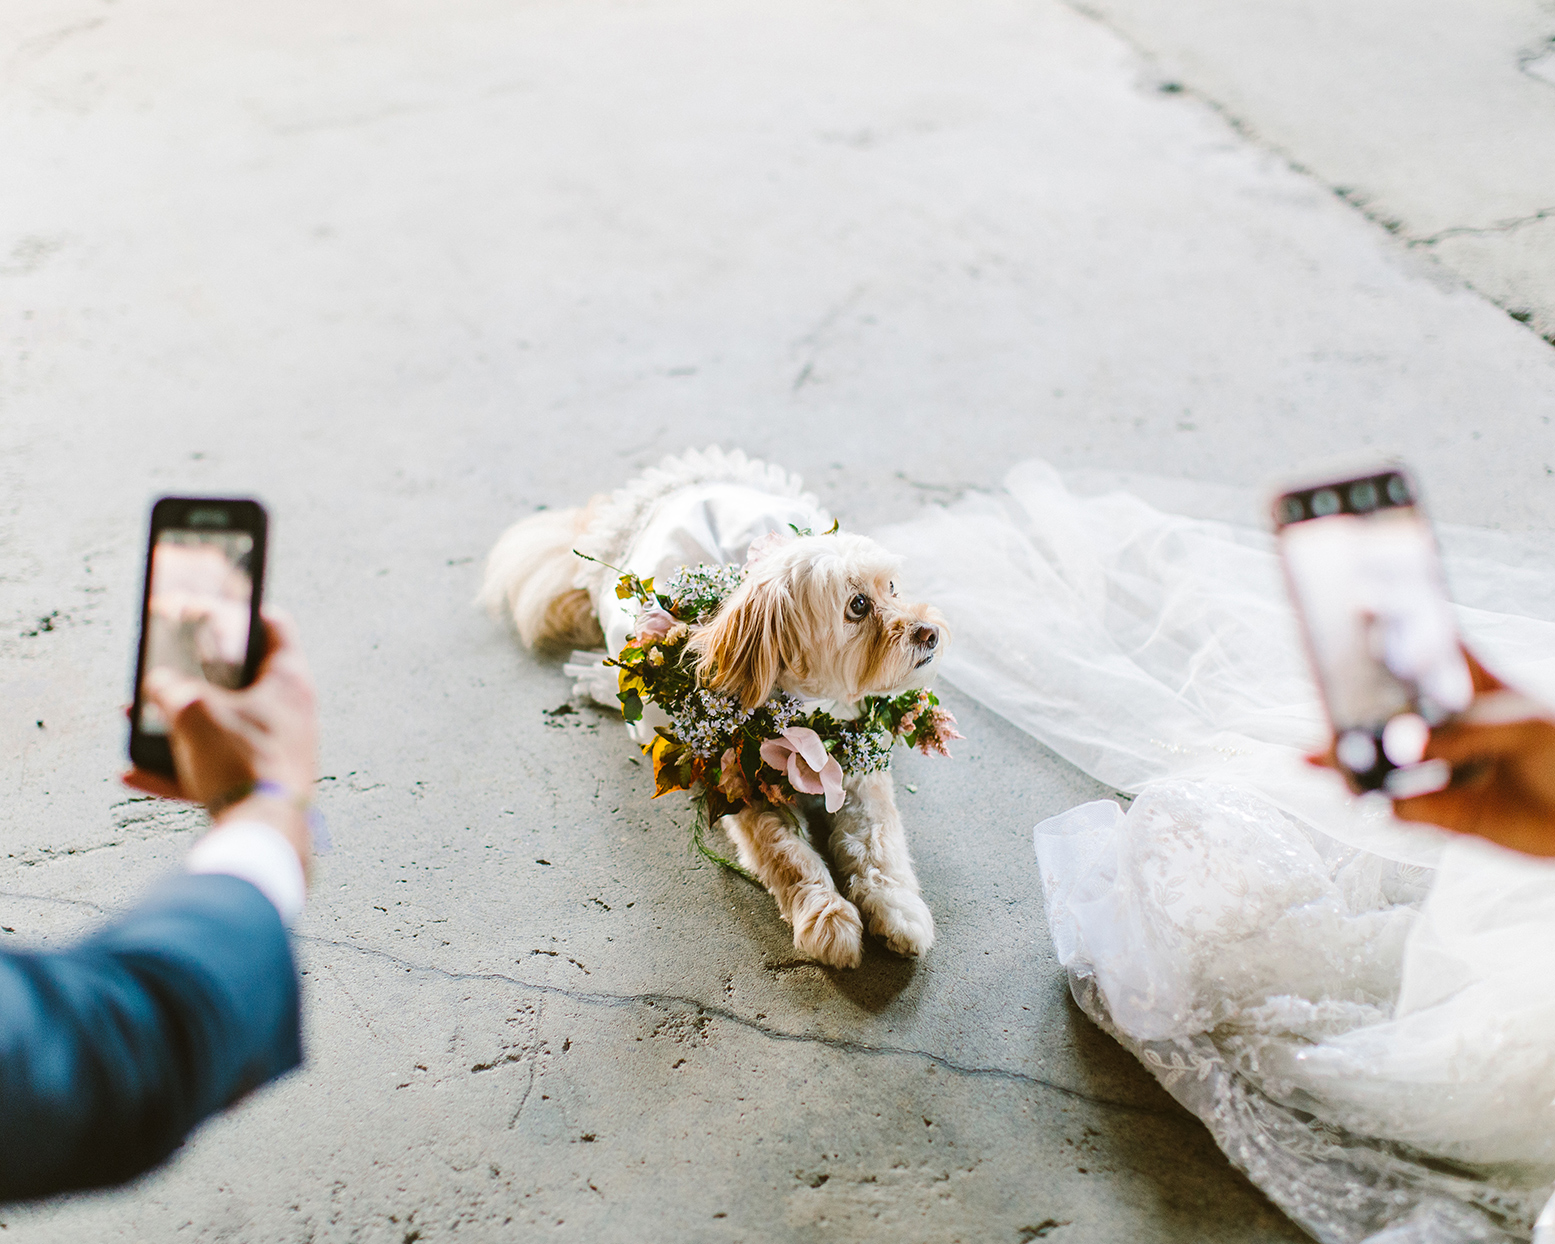 two people taking phone photos on dressed up dog on cement floor